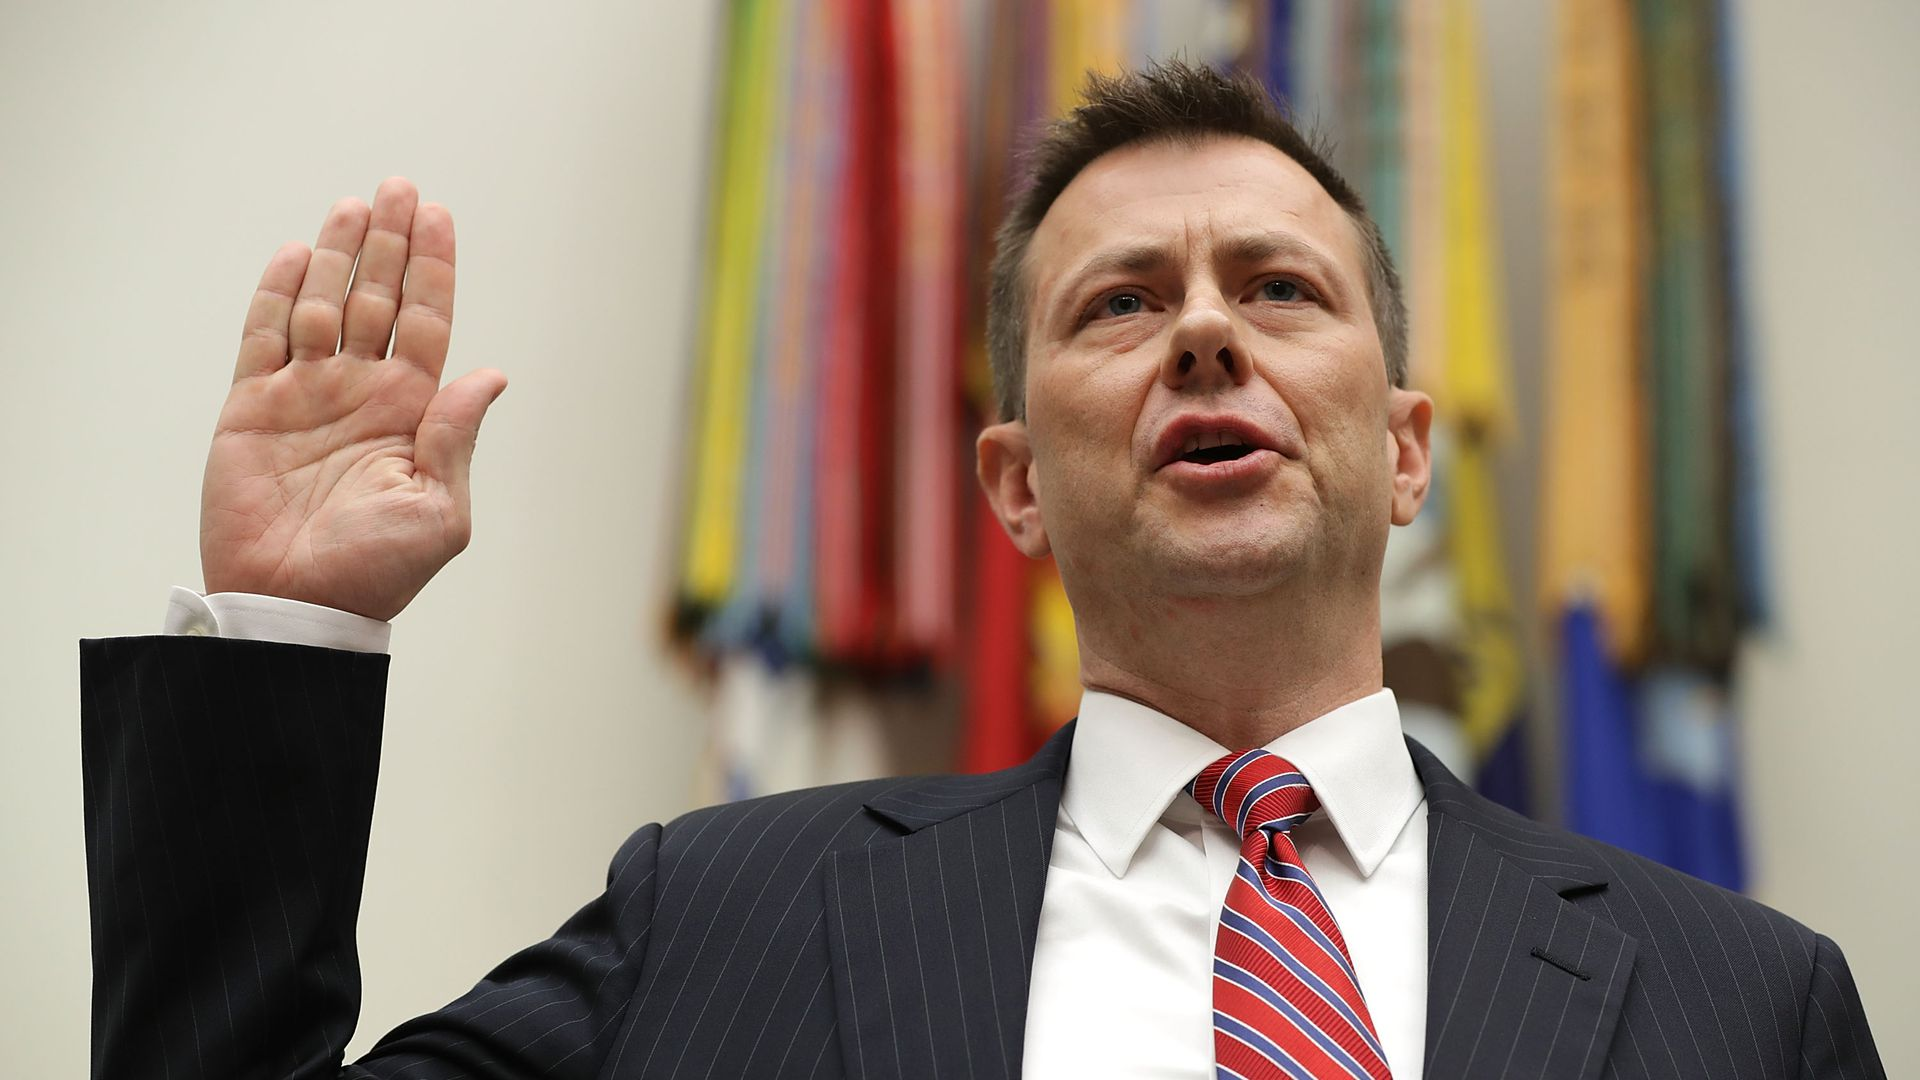 Strzok raises his hand to take an oath